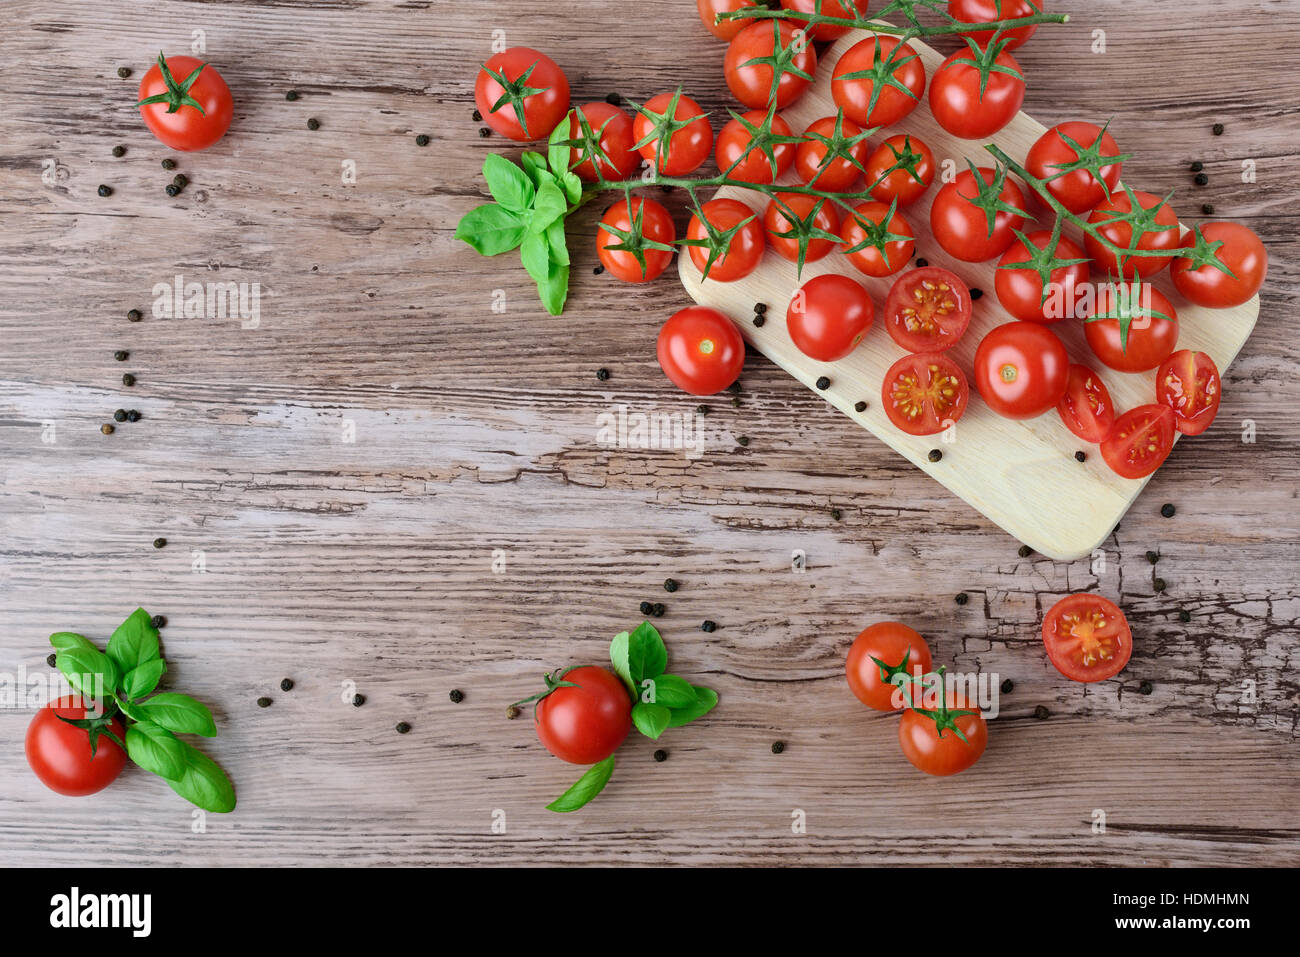 Tomatoes and pepper in groups with leaves of basil, on the brown wooden table. - Stock Image